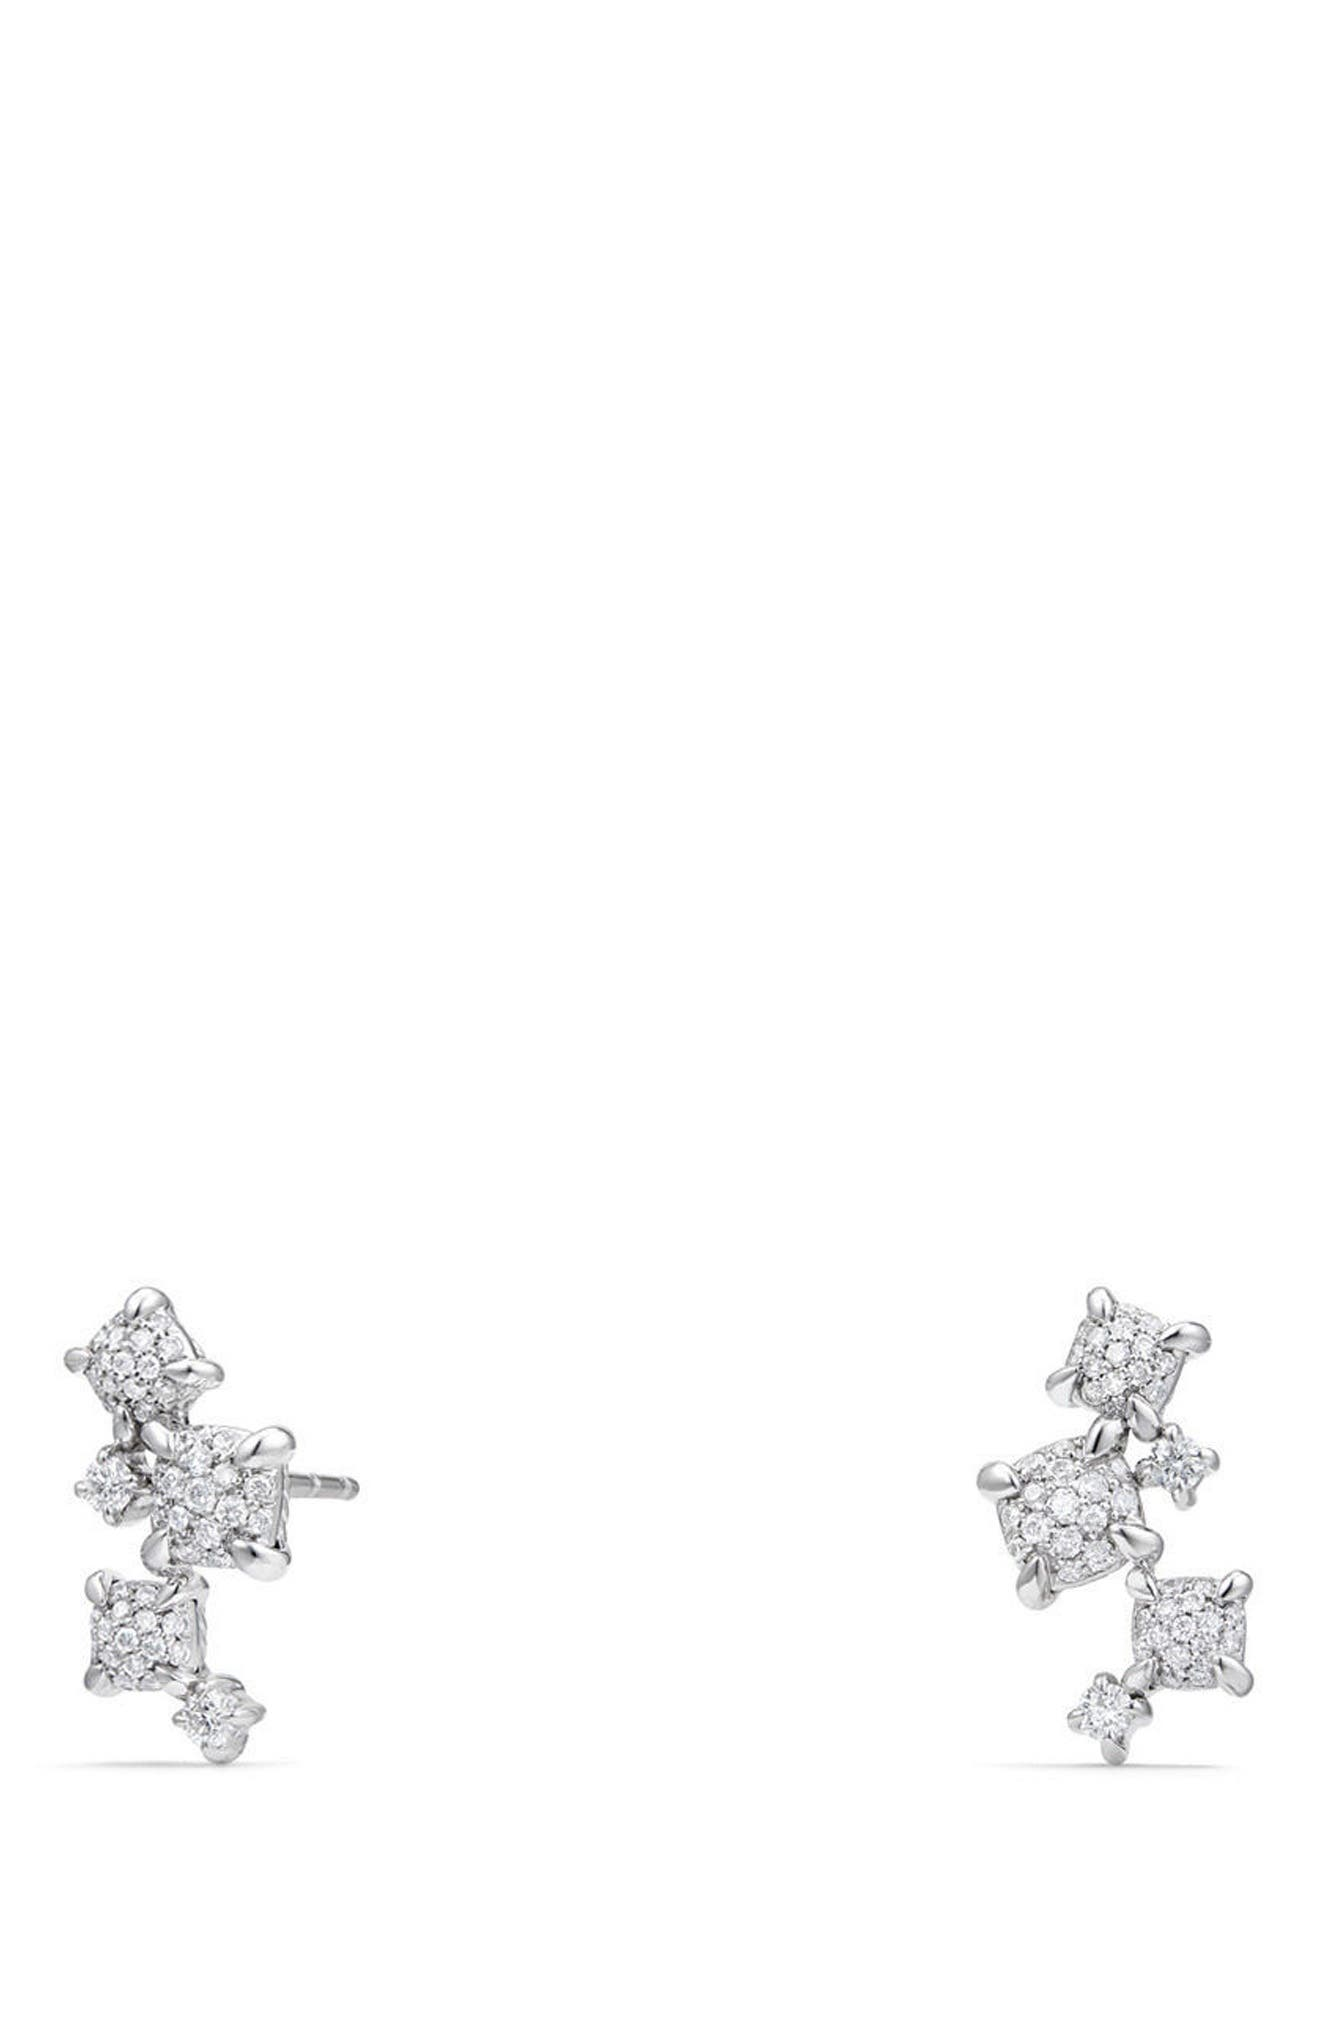 Main Image - David Yurman Petite Châtelaine Climber Earrings in 18K Gold with Diamonds